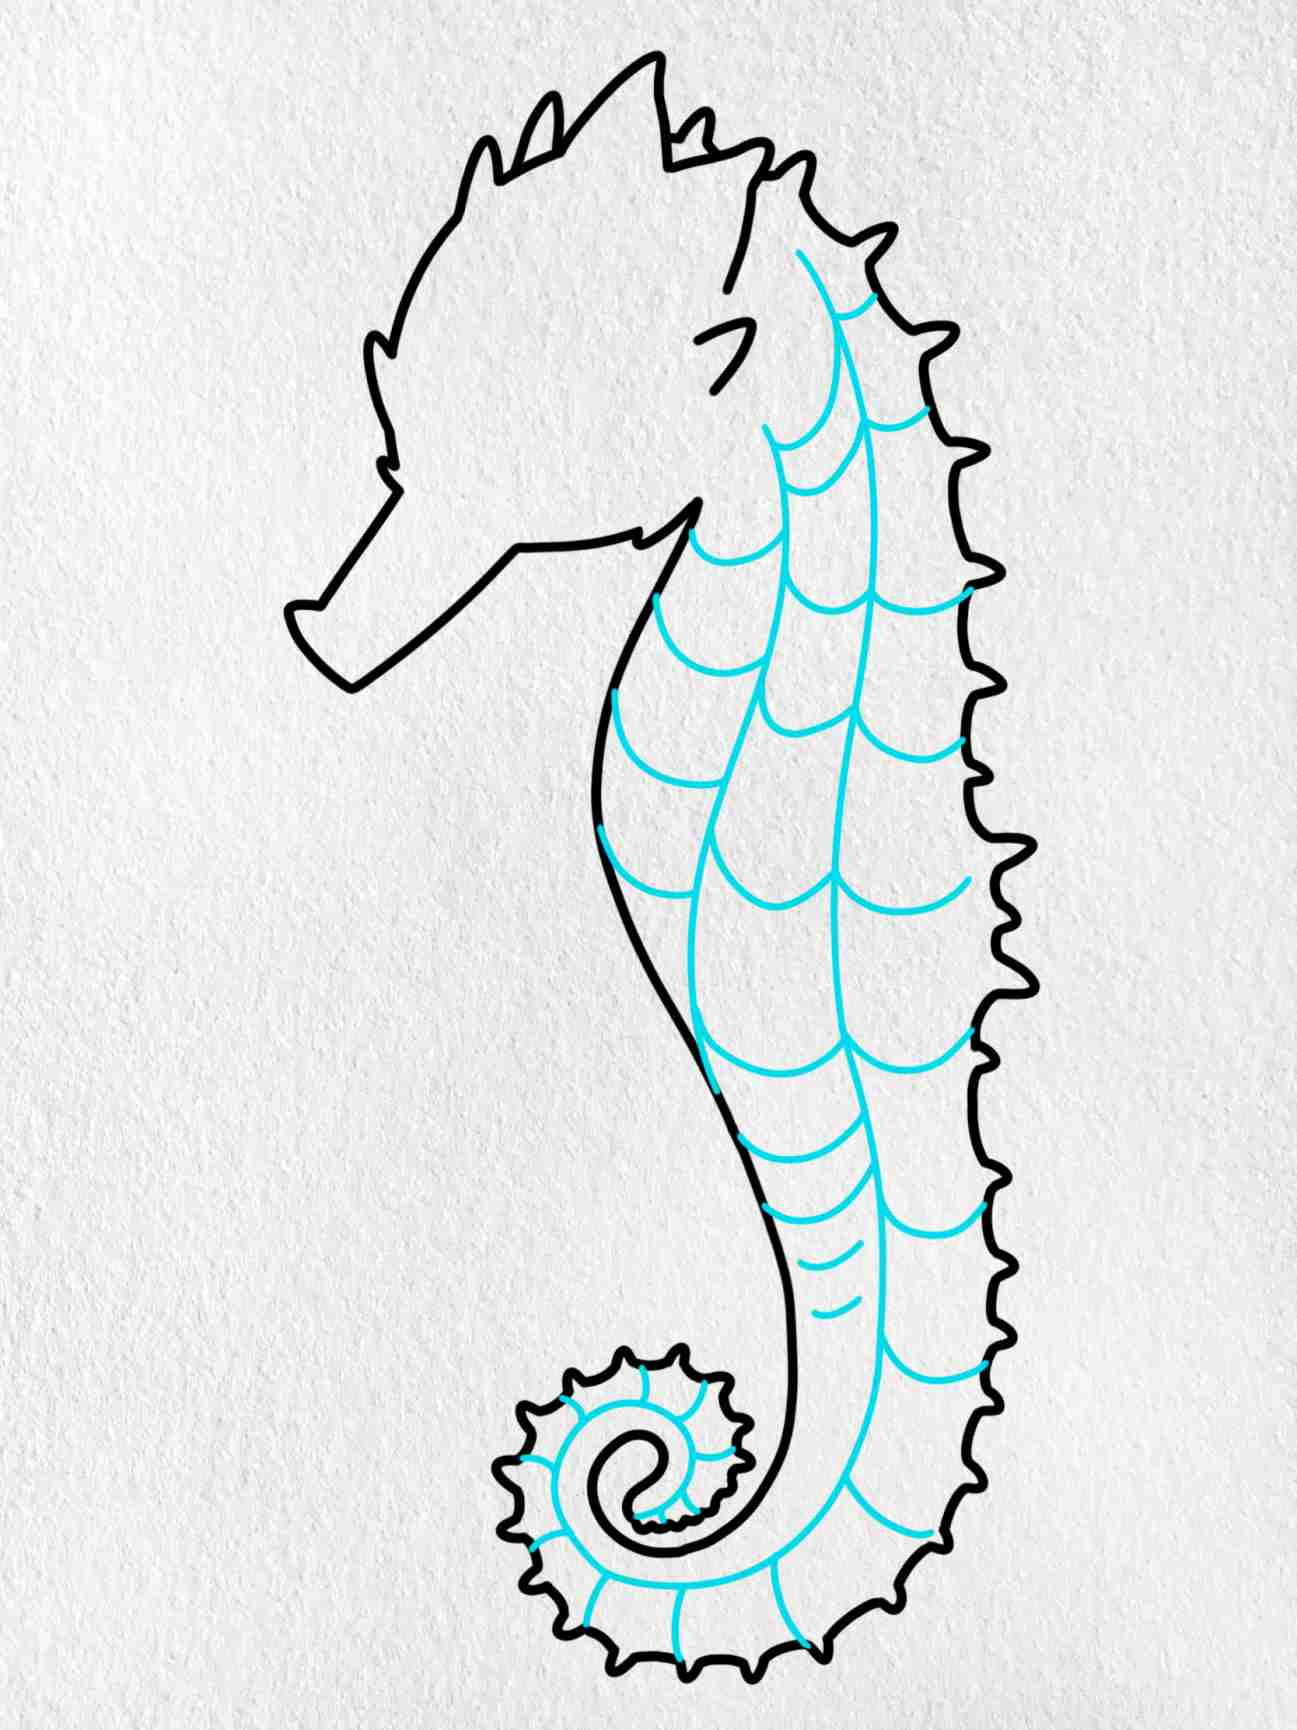 How To Draw A Seahorse: Step 7